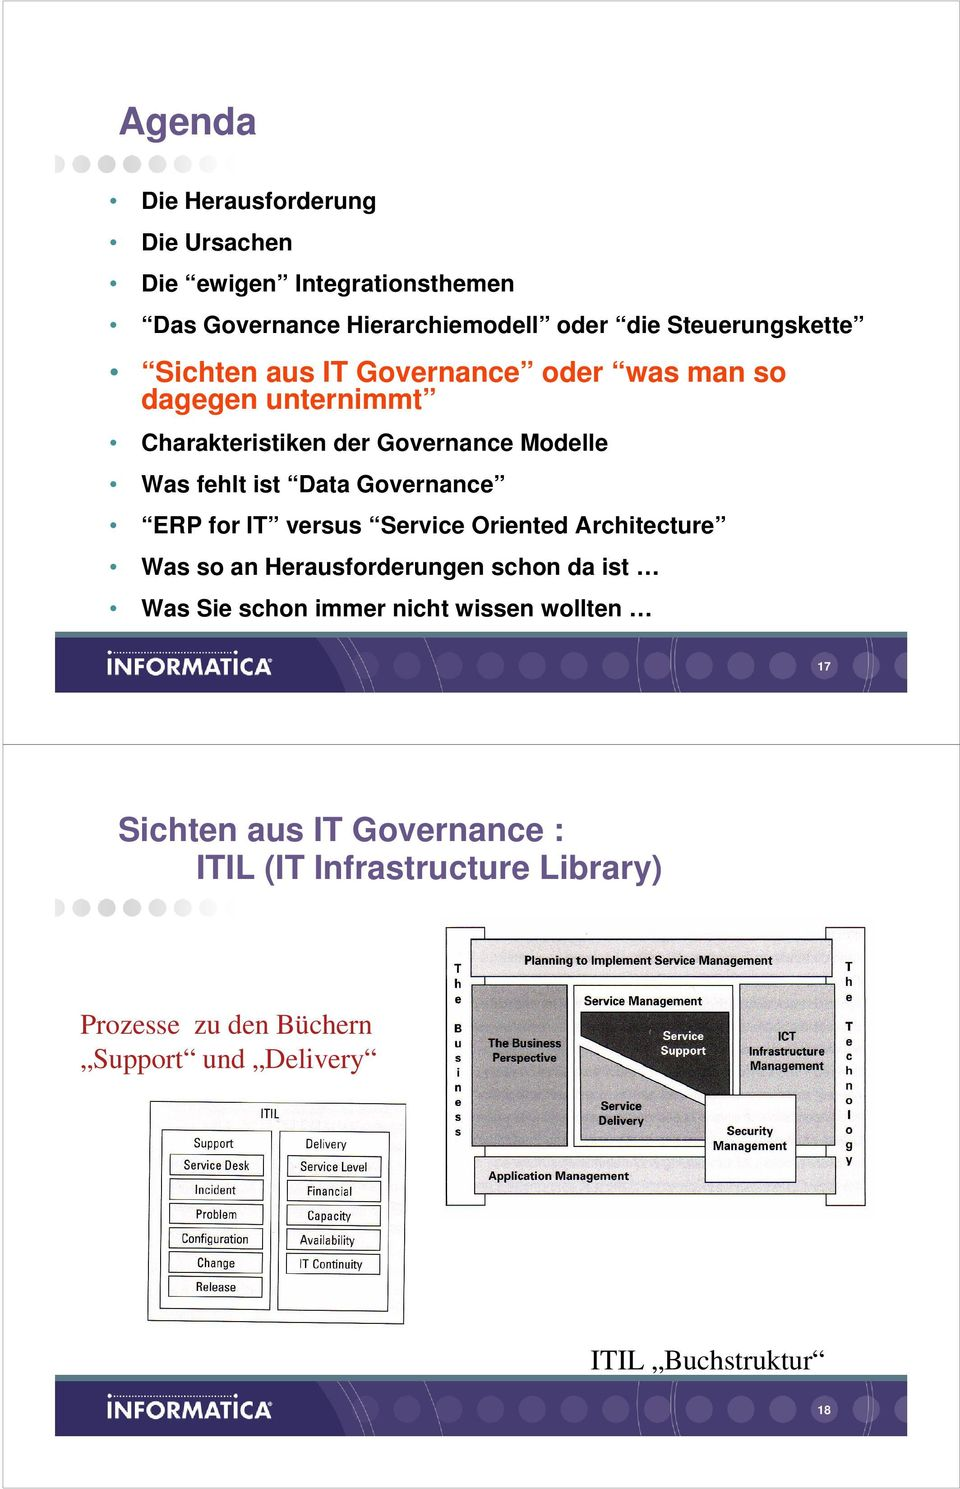 (IT Infrastructure Library) Prozesse zu den